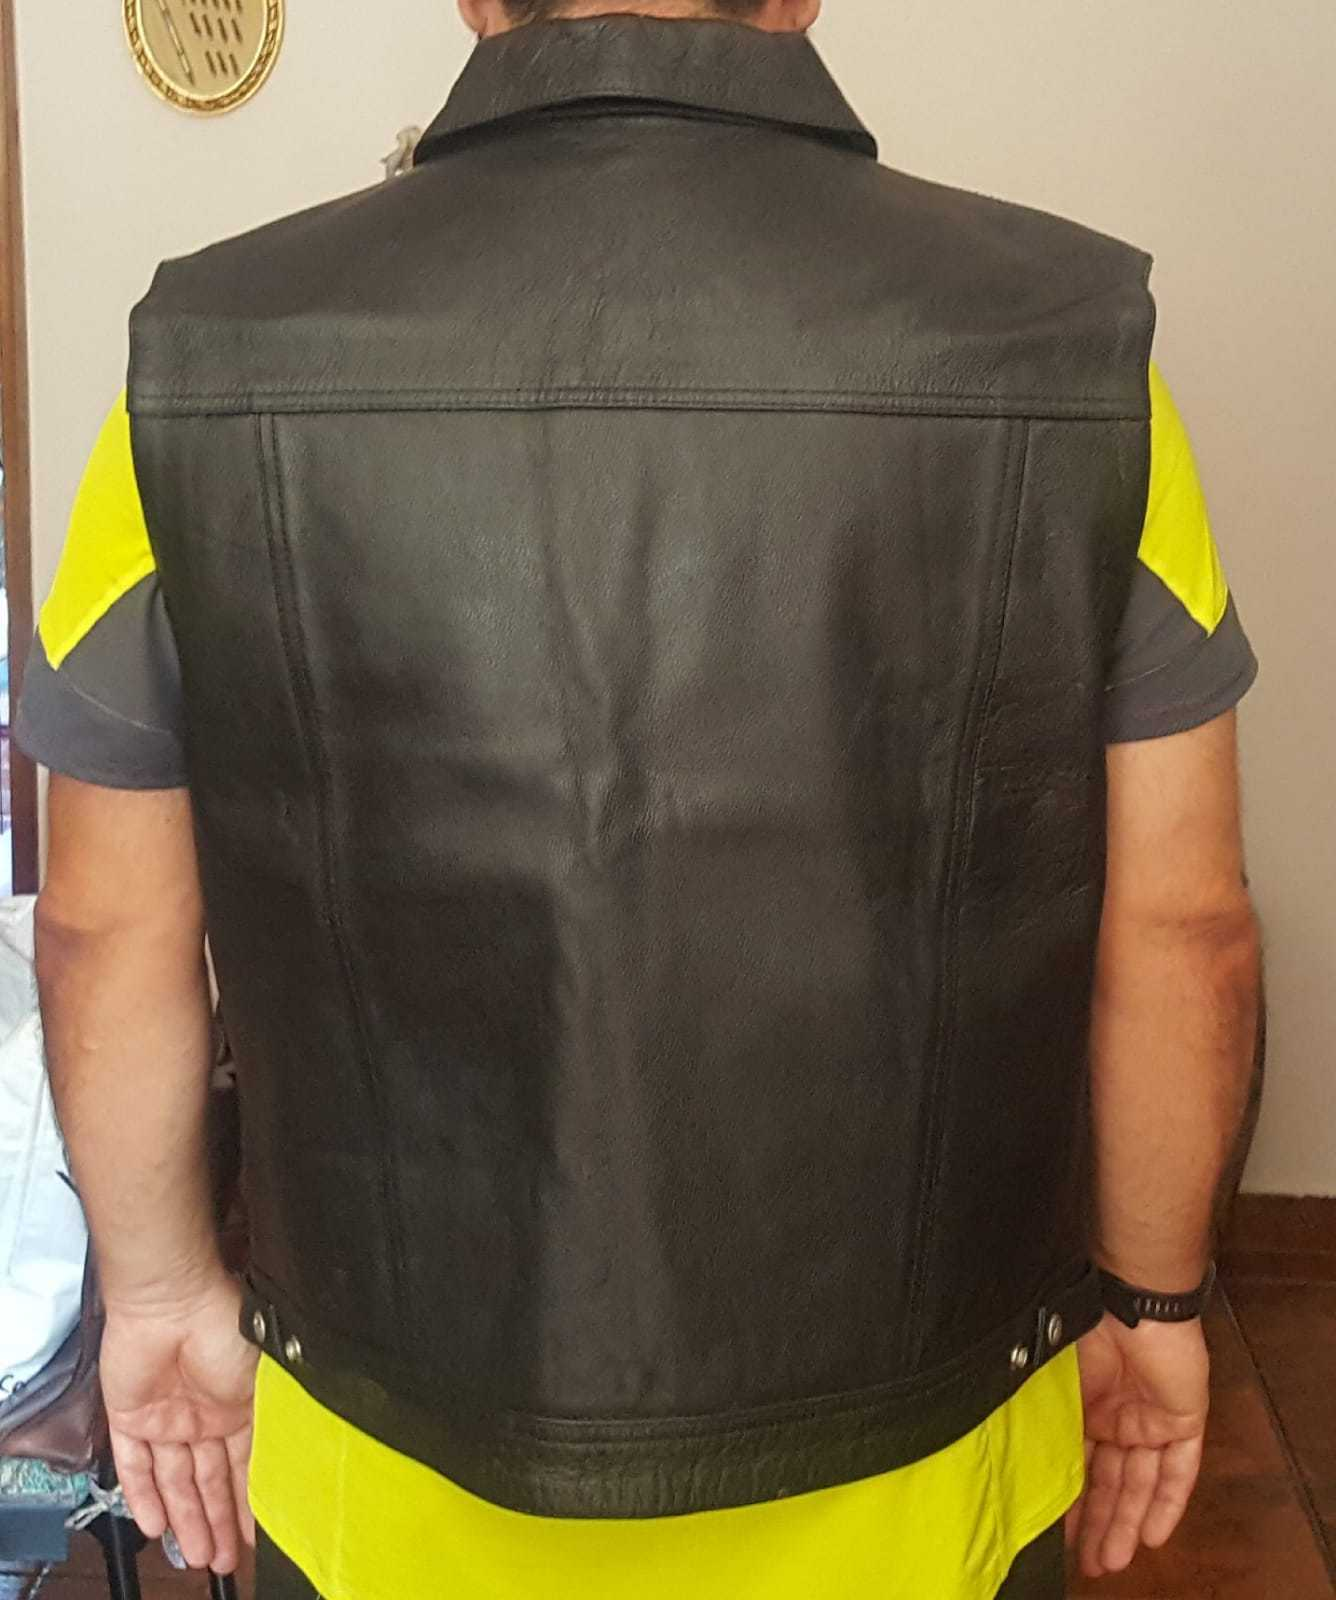 GIUBBOTTO GIACCA GIACCA GIACCA MOTO GILET IN PELLE BIKER CUSTOM 74df81